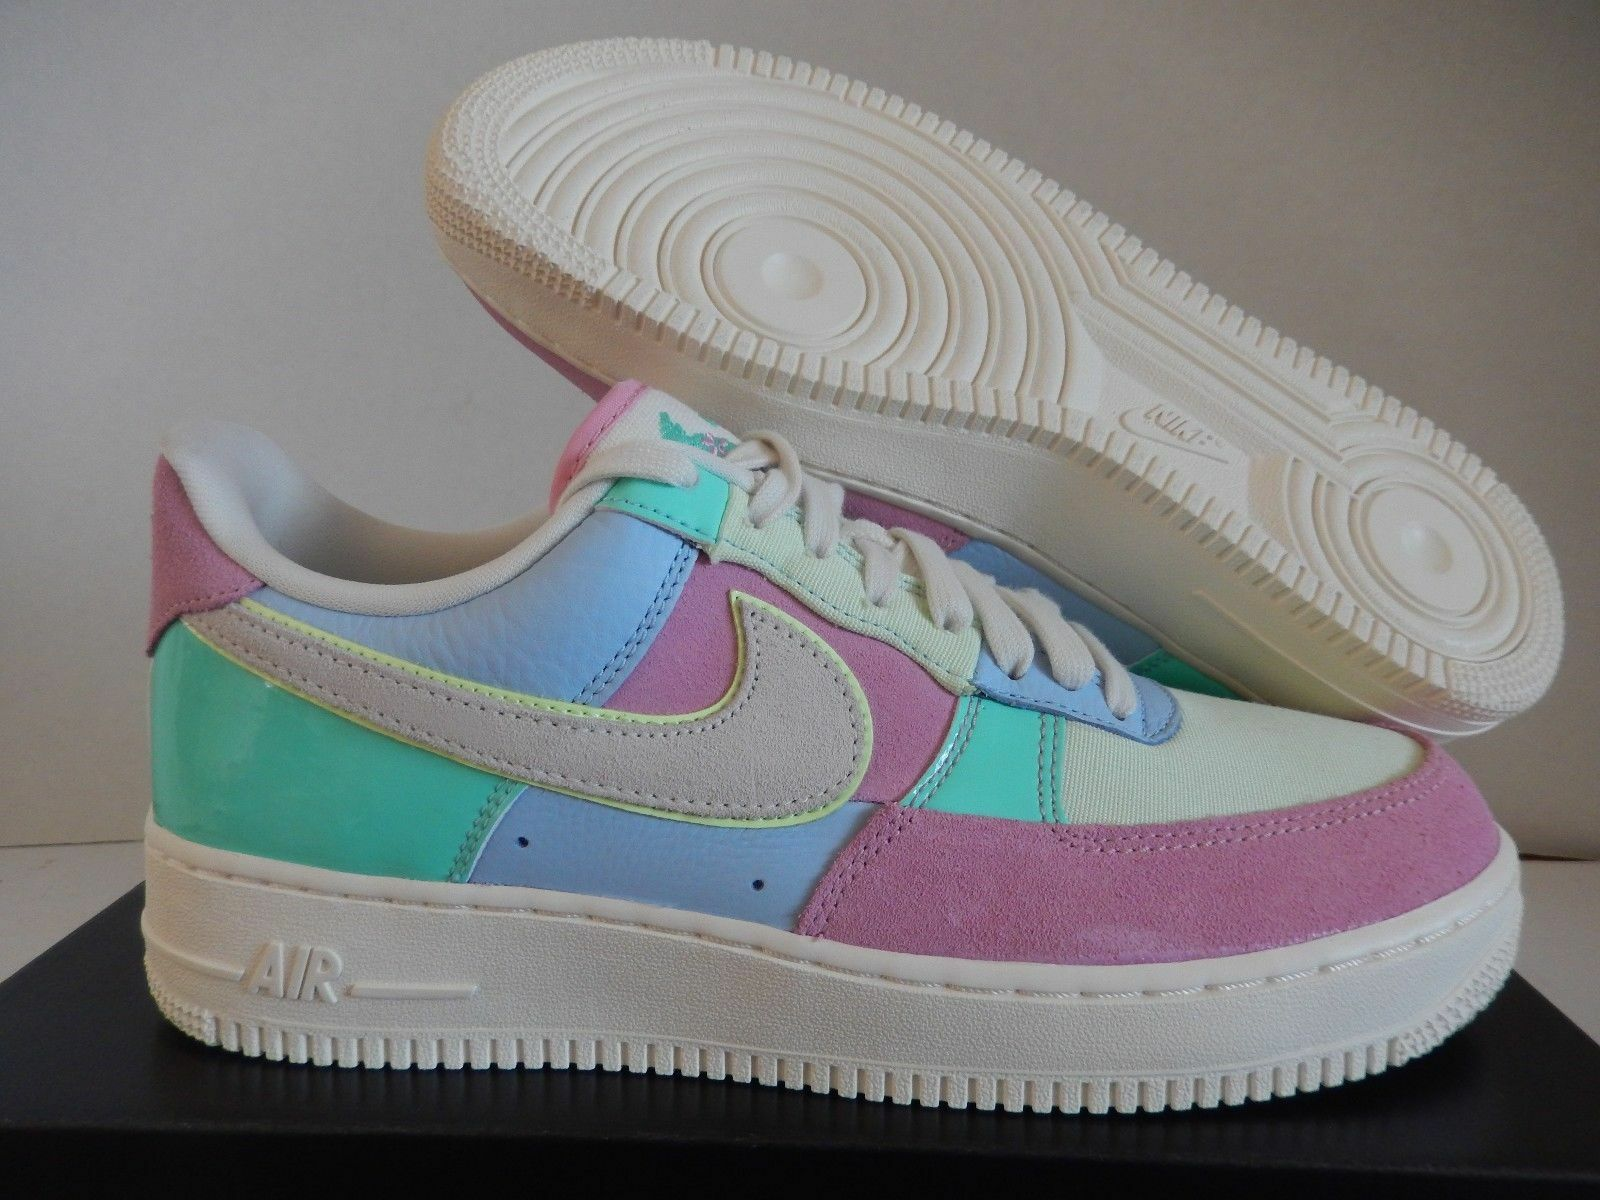 Nike Air Force 1 '07 QS Sz 18 Easter 2018 AH8462-400 AF1 Patchwork Limited NSW